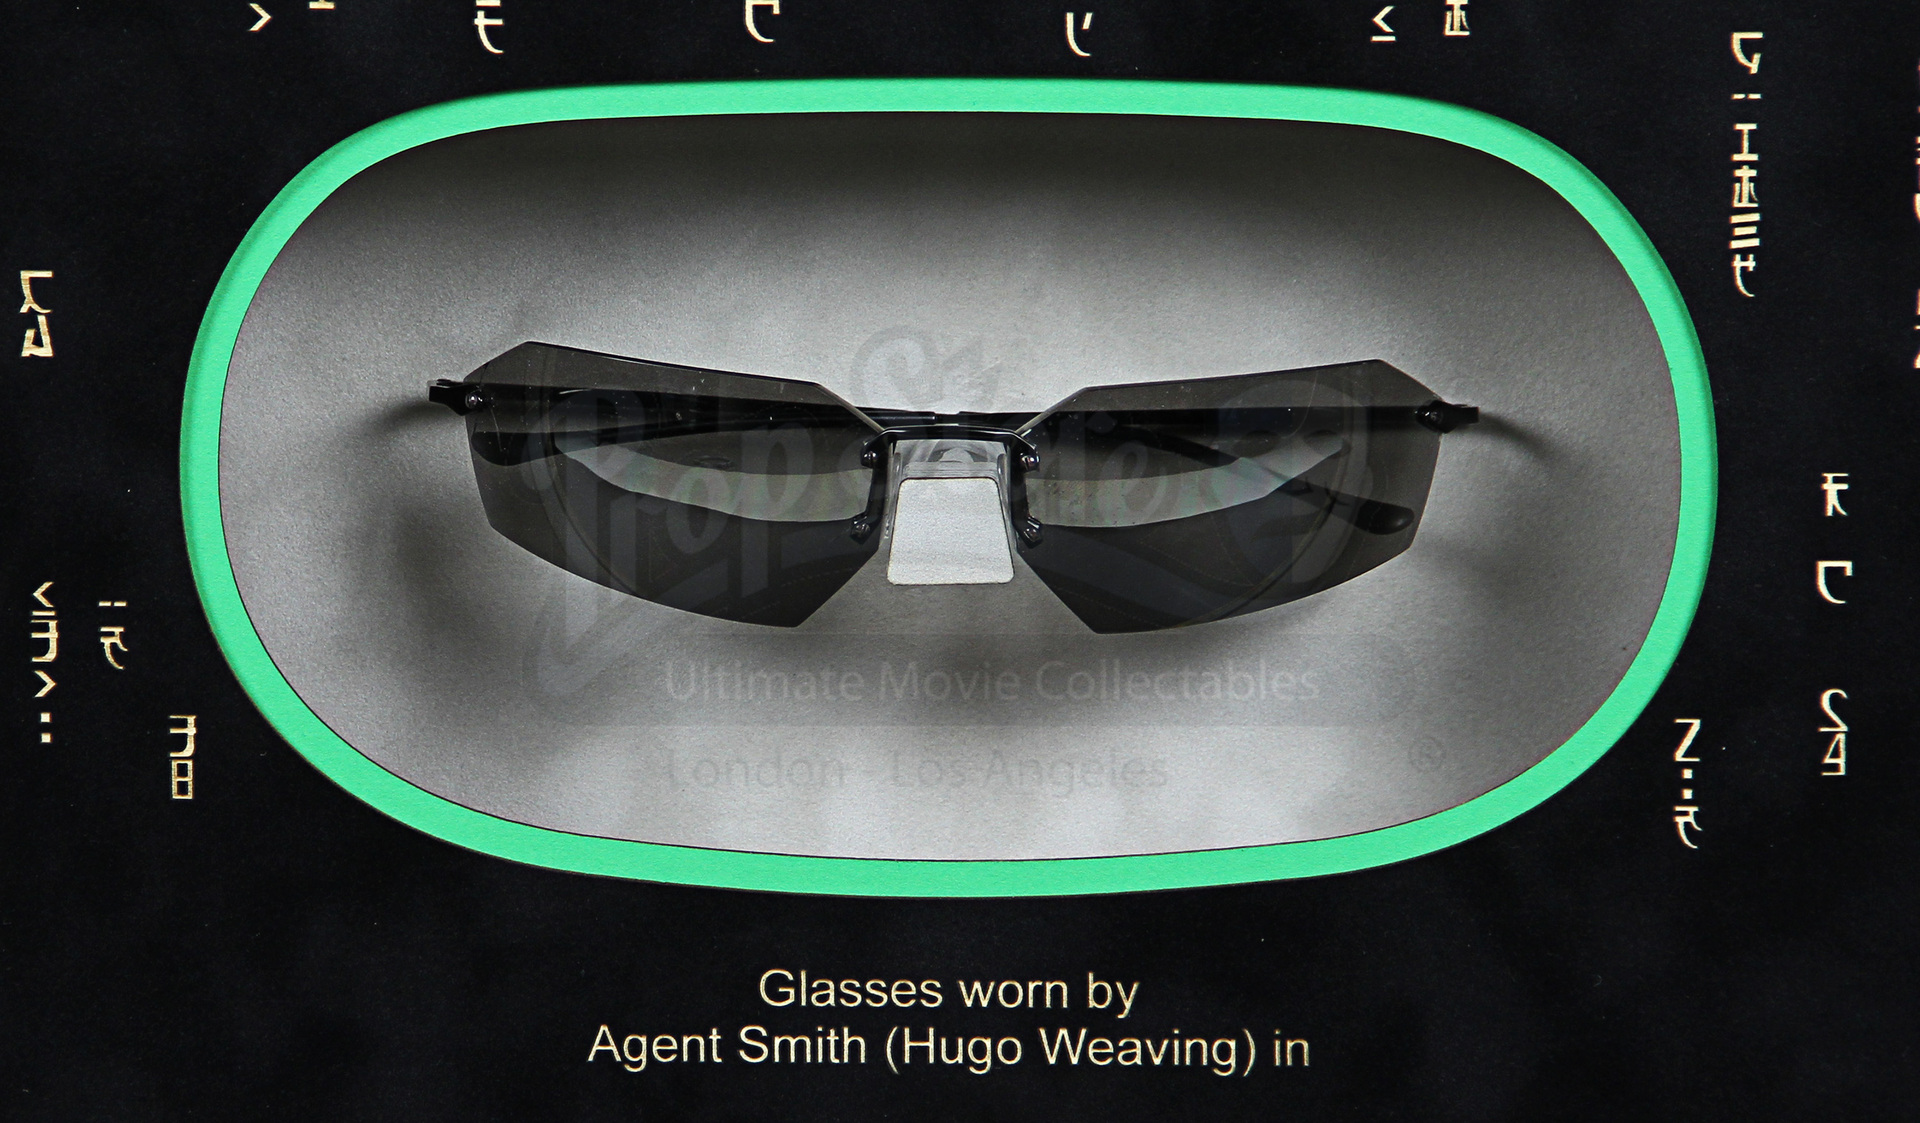 74560d577 Agent Smith (Hugo Weaving) Glasses Display | Prop Store - Ultimate Movie  Collectables